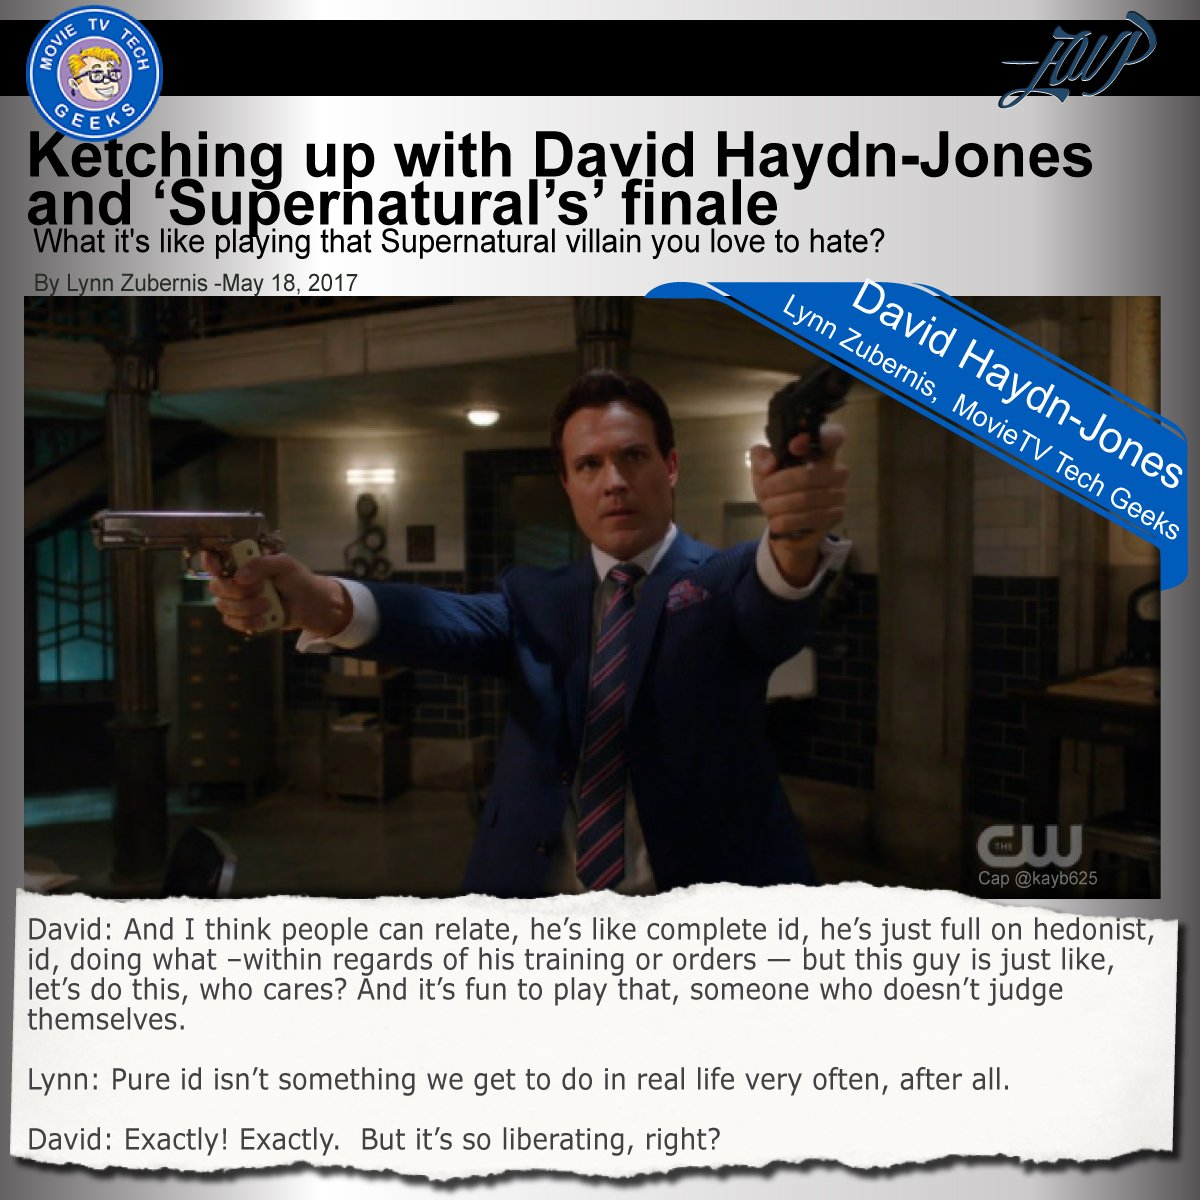 After tonight's #supernatural you'll need a lit'l something. Try #LynnZubernis's candid chat w/ @DavidHaydnJones https://t.co/VBAodHz6j2 https://t.co/nWuyDqK3Wy